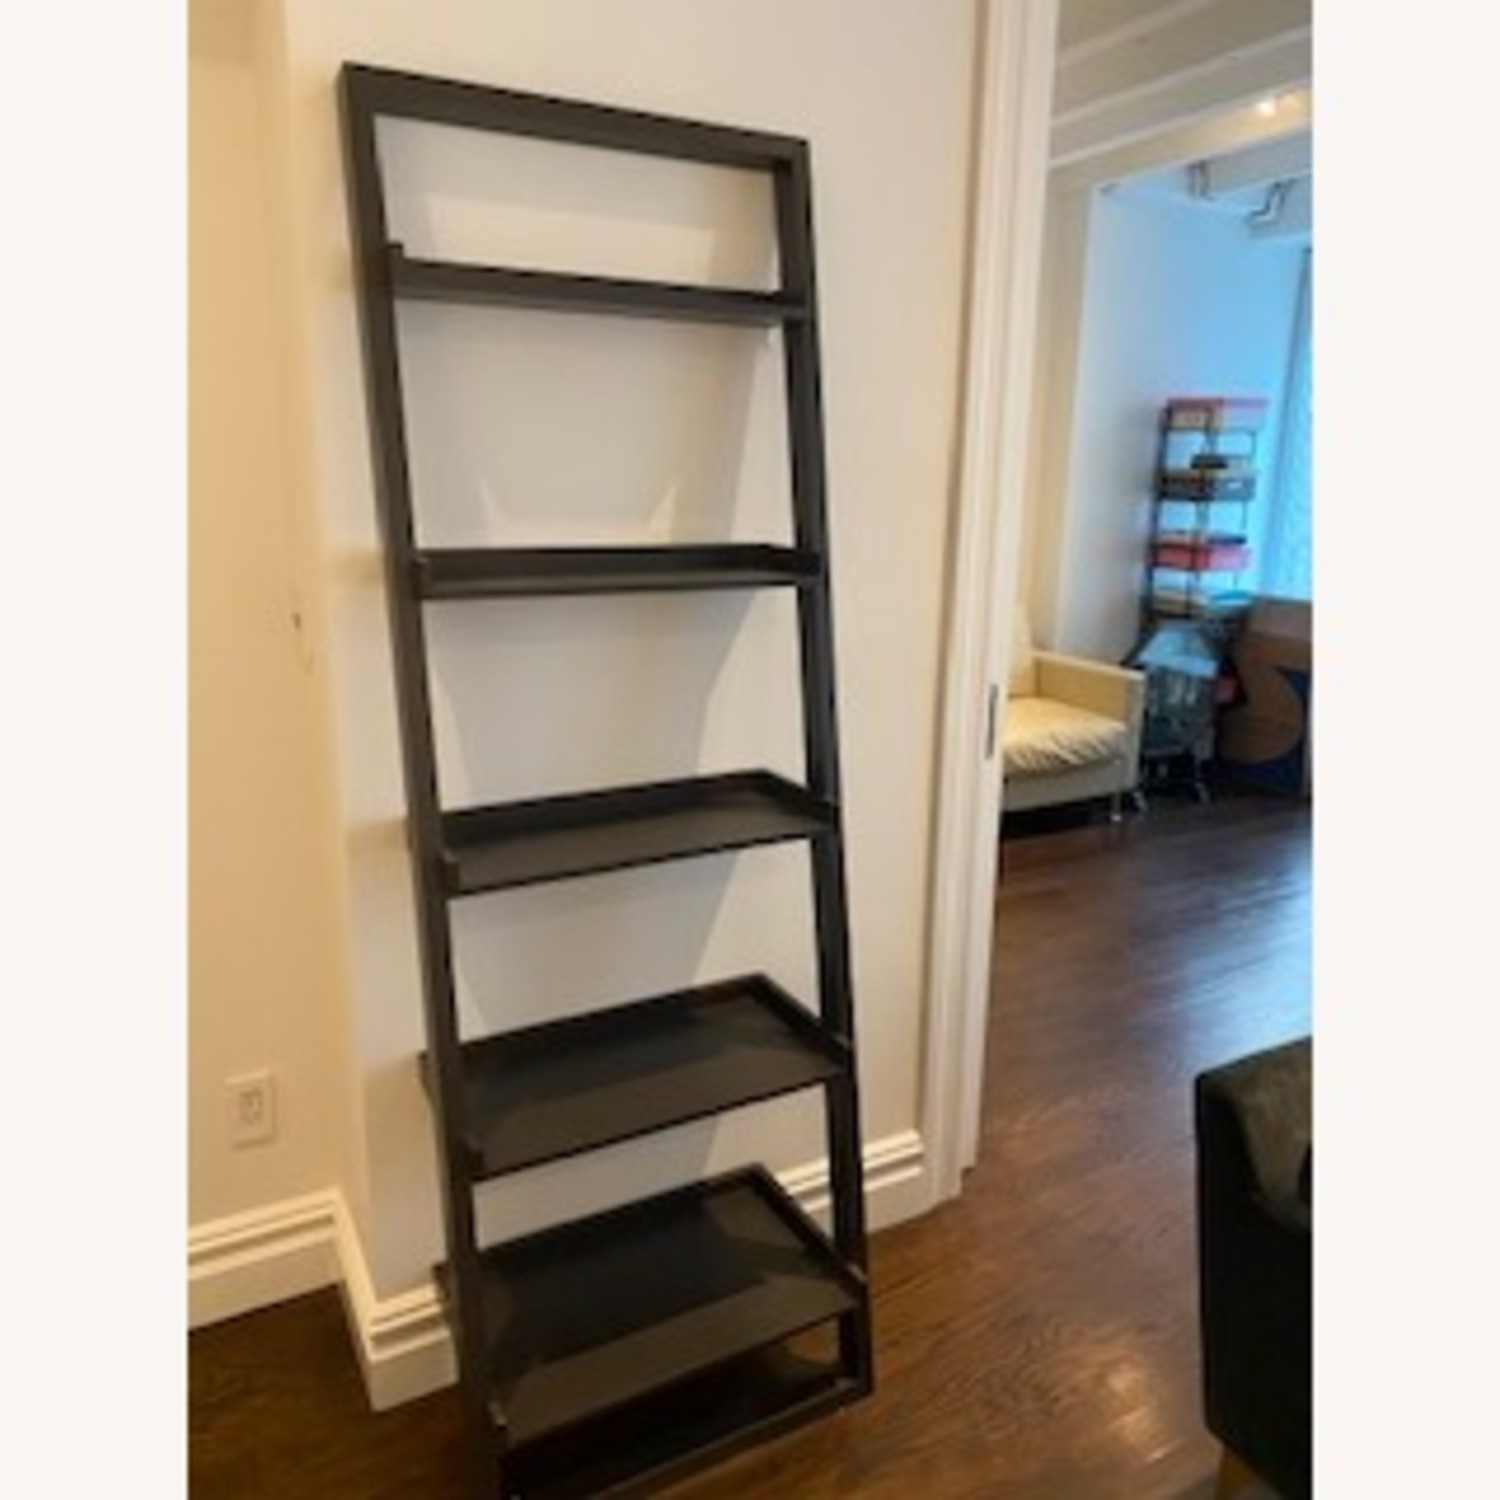 Crate and Barrel Sloane Leaning Bookcase - image-1